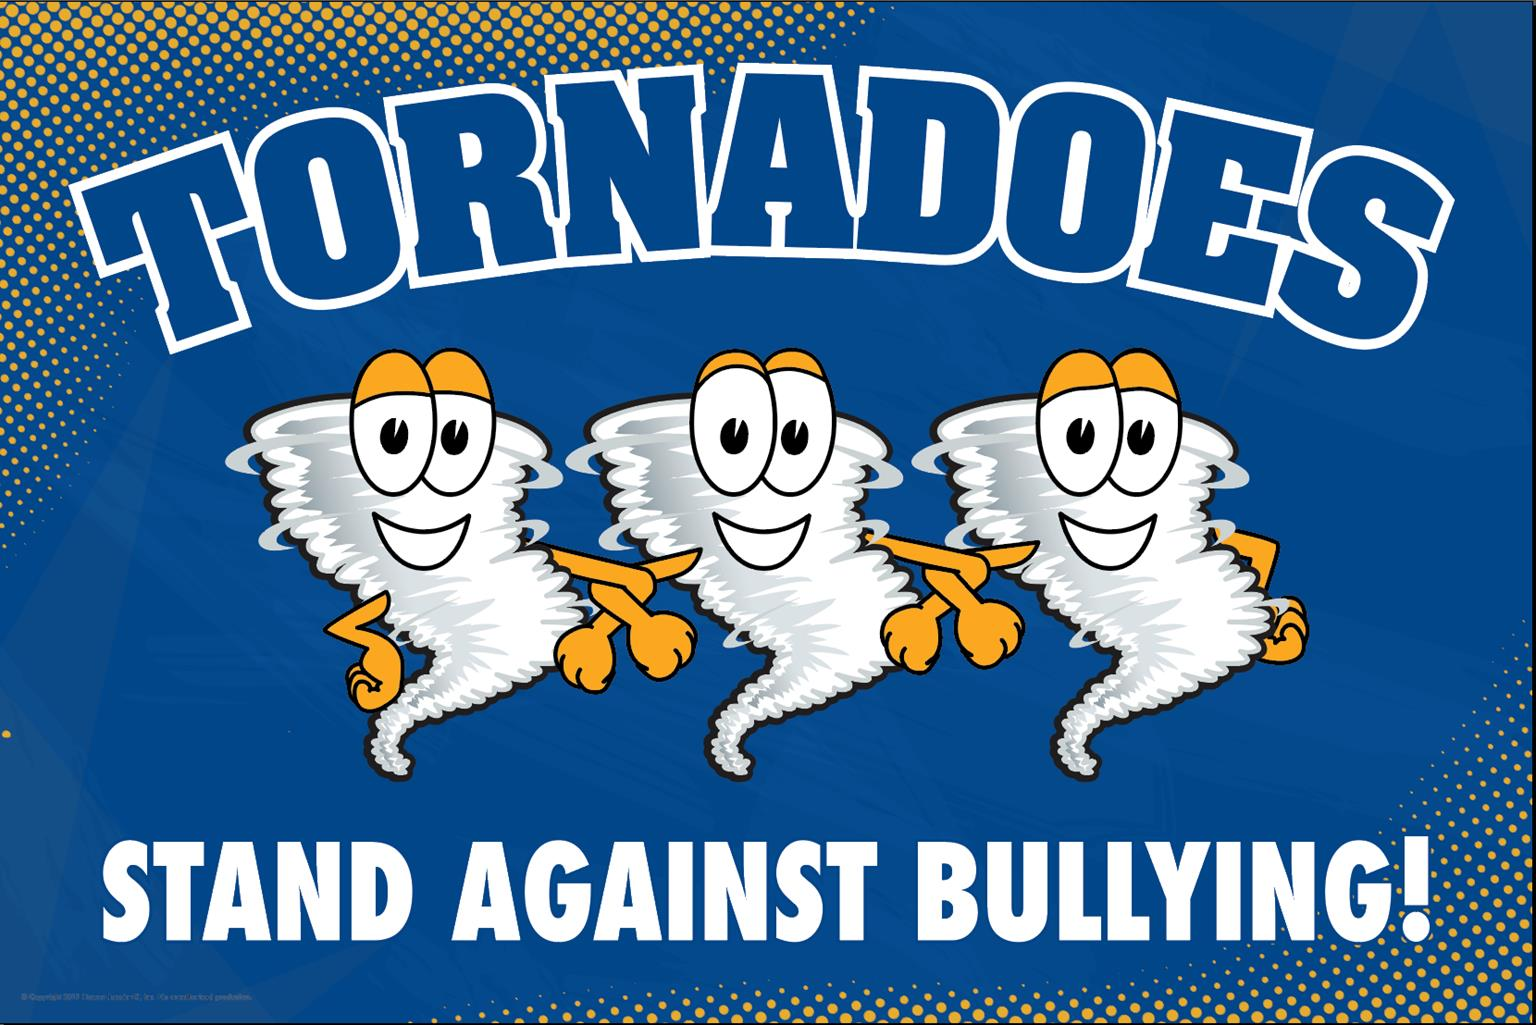 Anti Bullying Poster Tornadoes